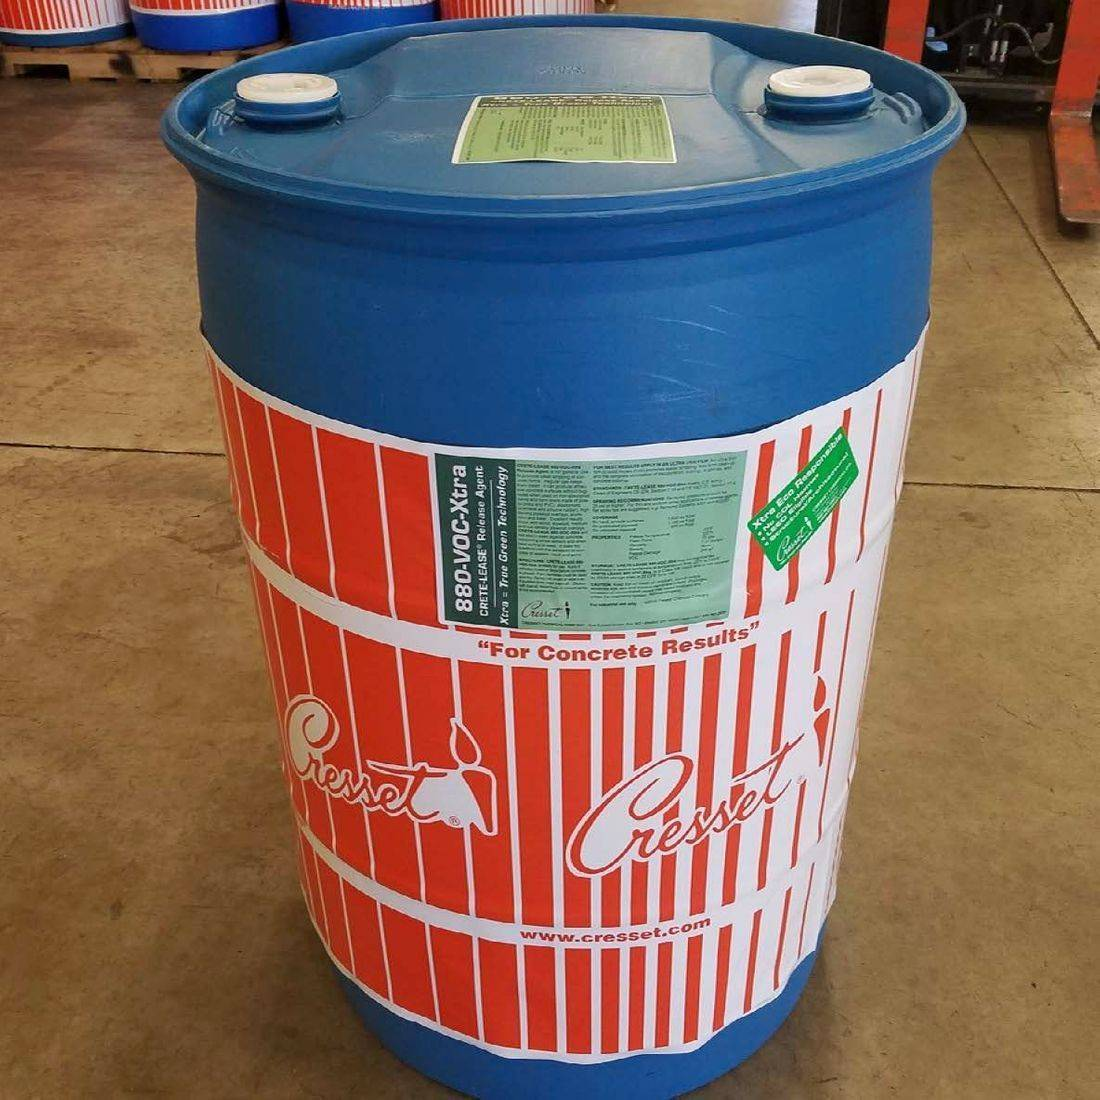 Cresset 880 VOC Compliant (Best) 55 Gallon Drum